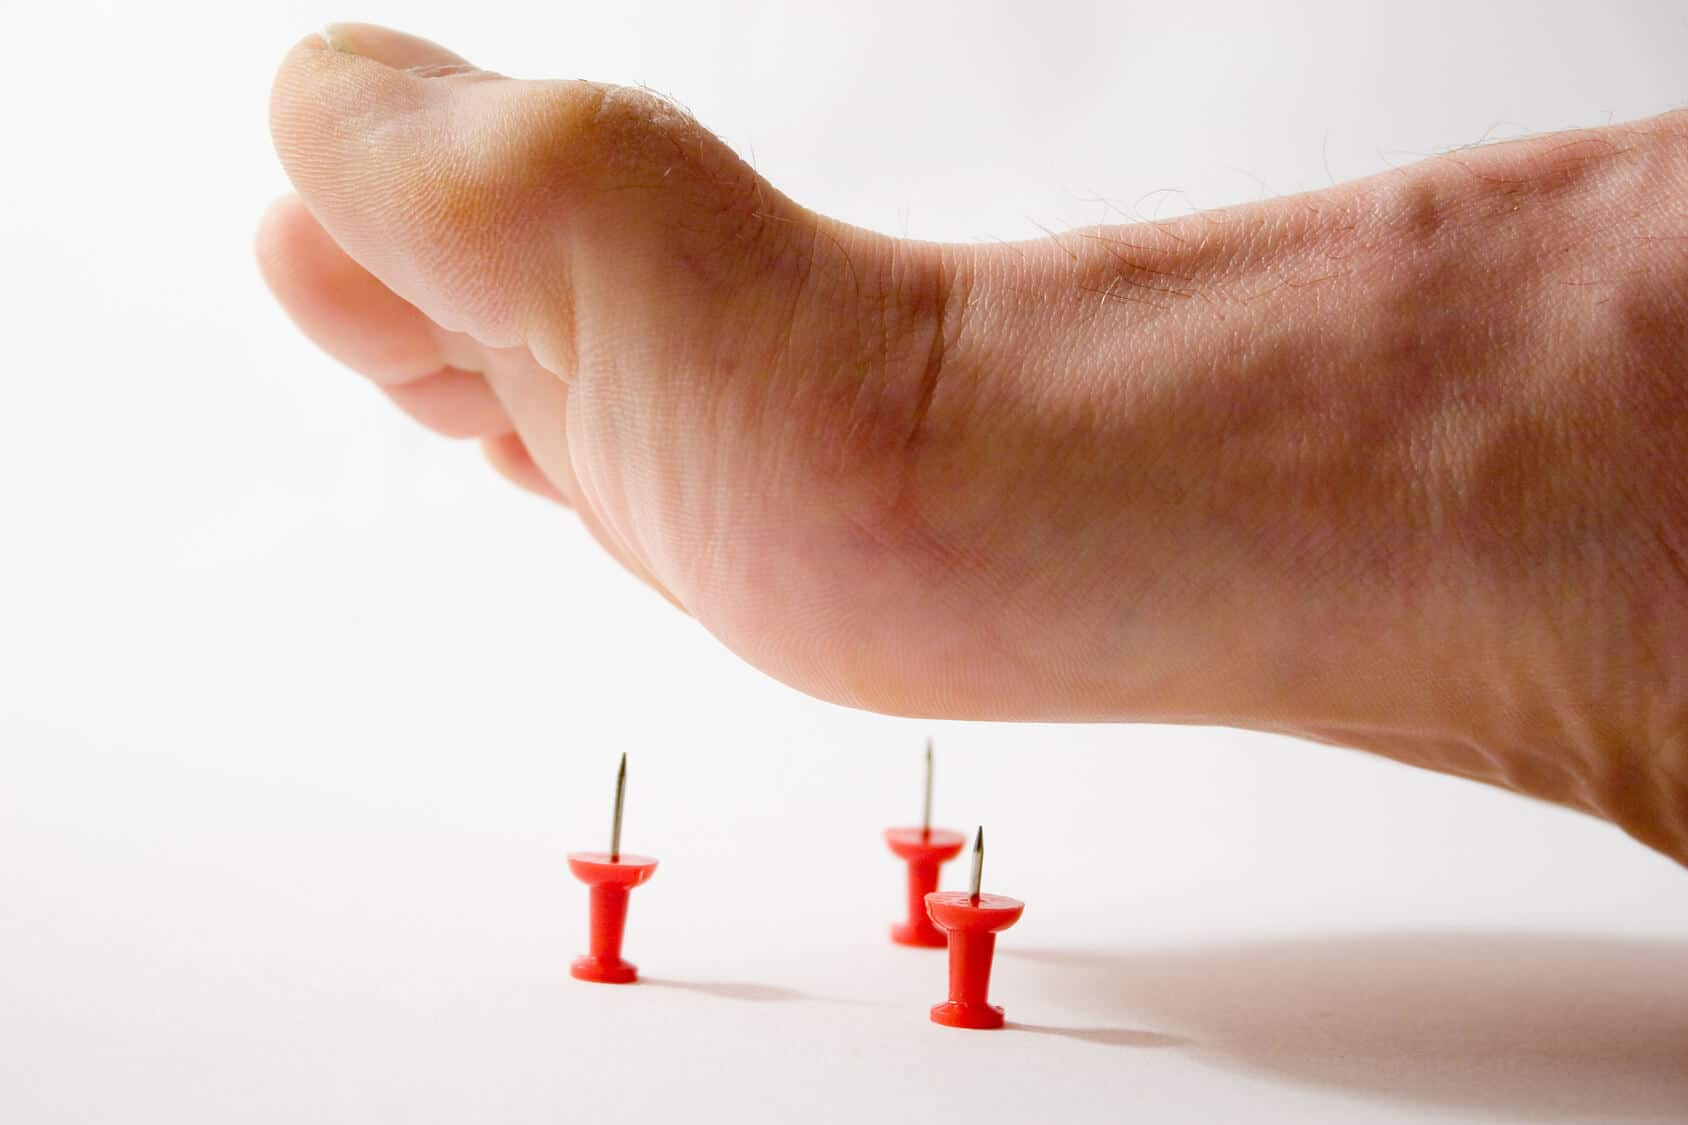 How To Treat Nerve Pain In Feet Naturally